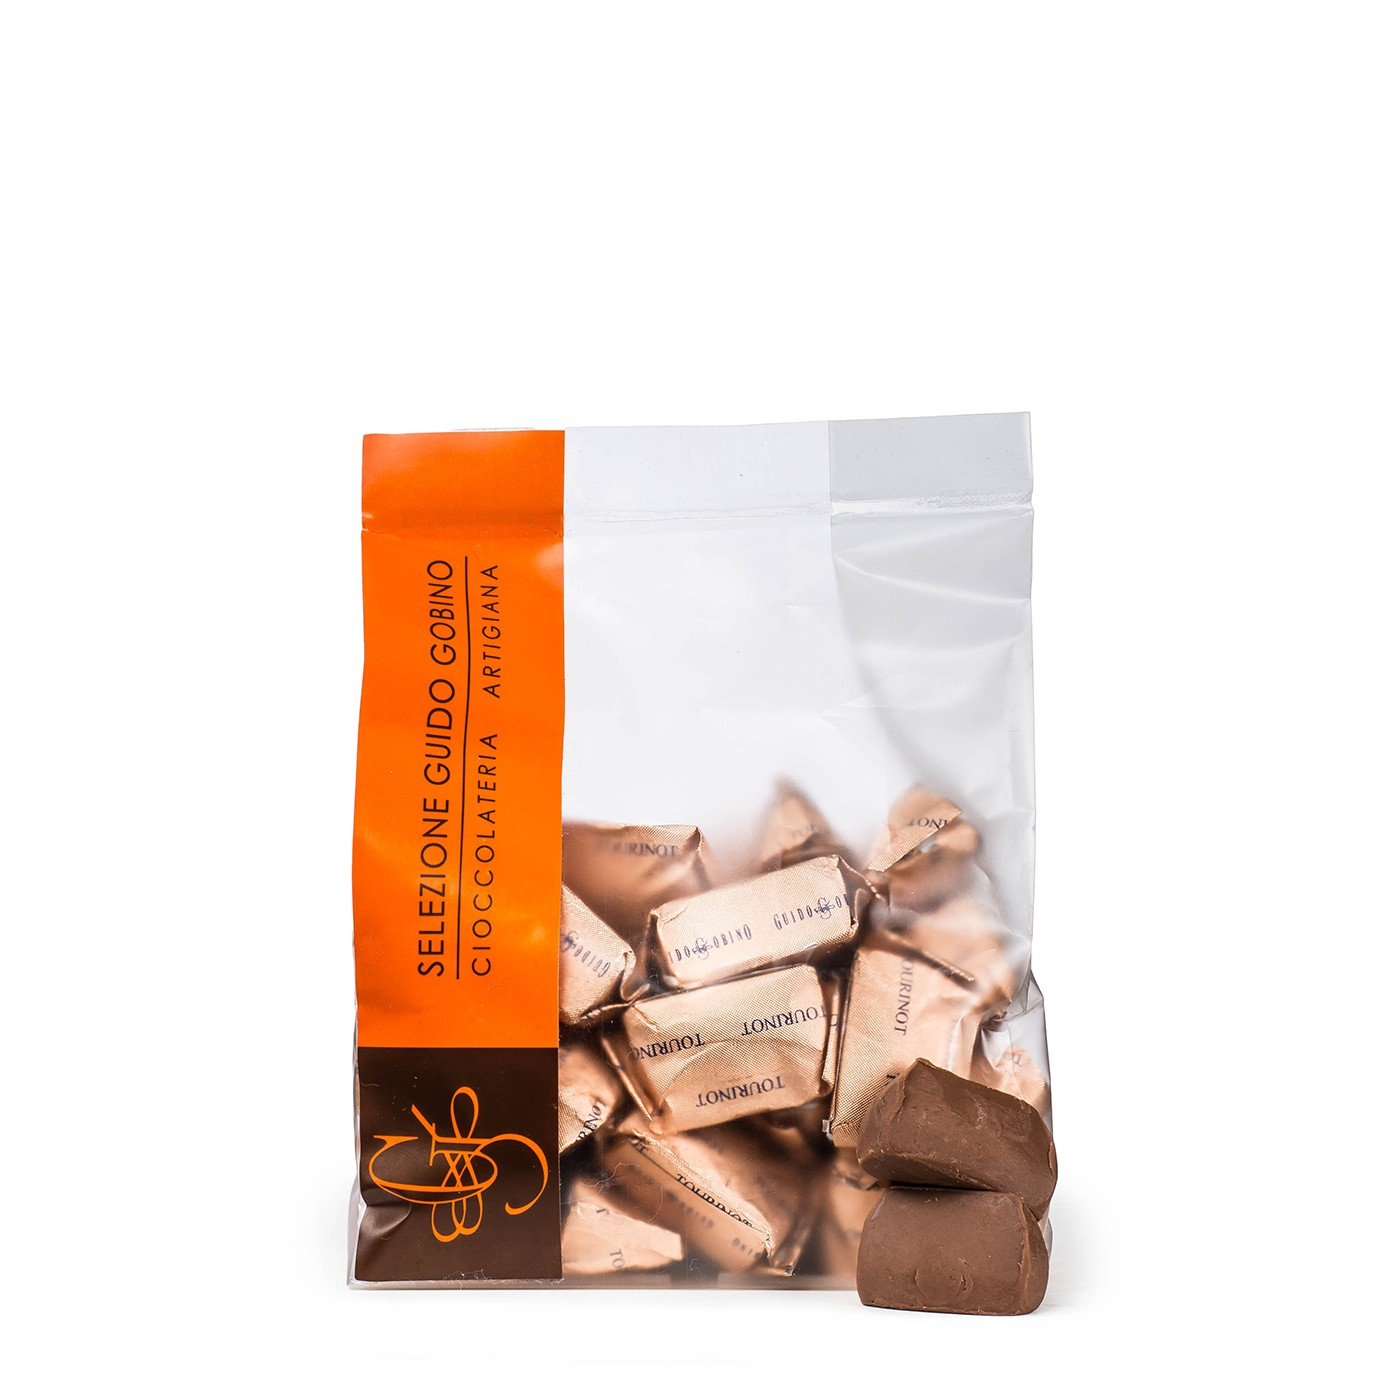 Gianduja Candies Bag 8.8 oz